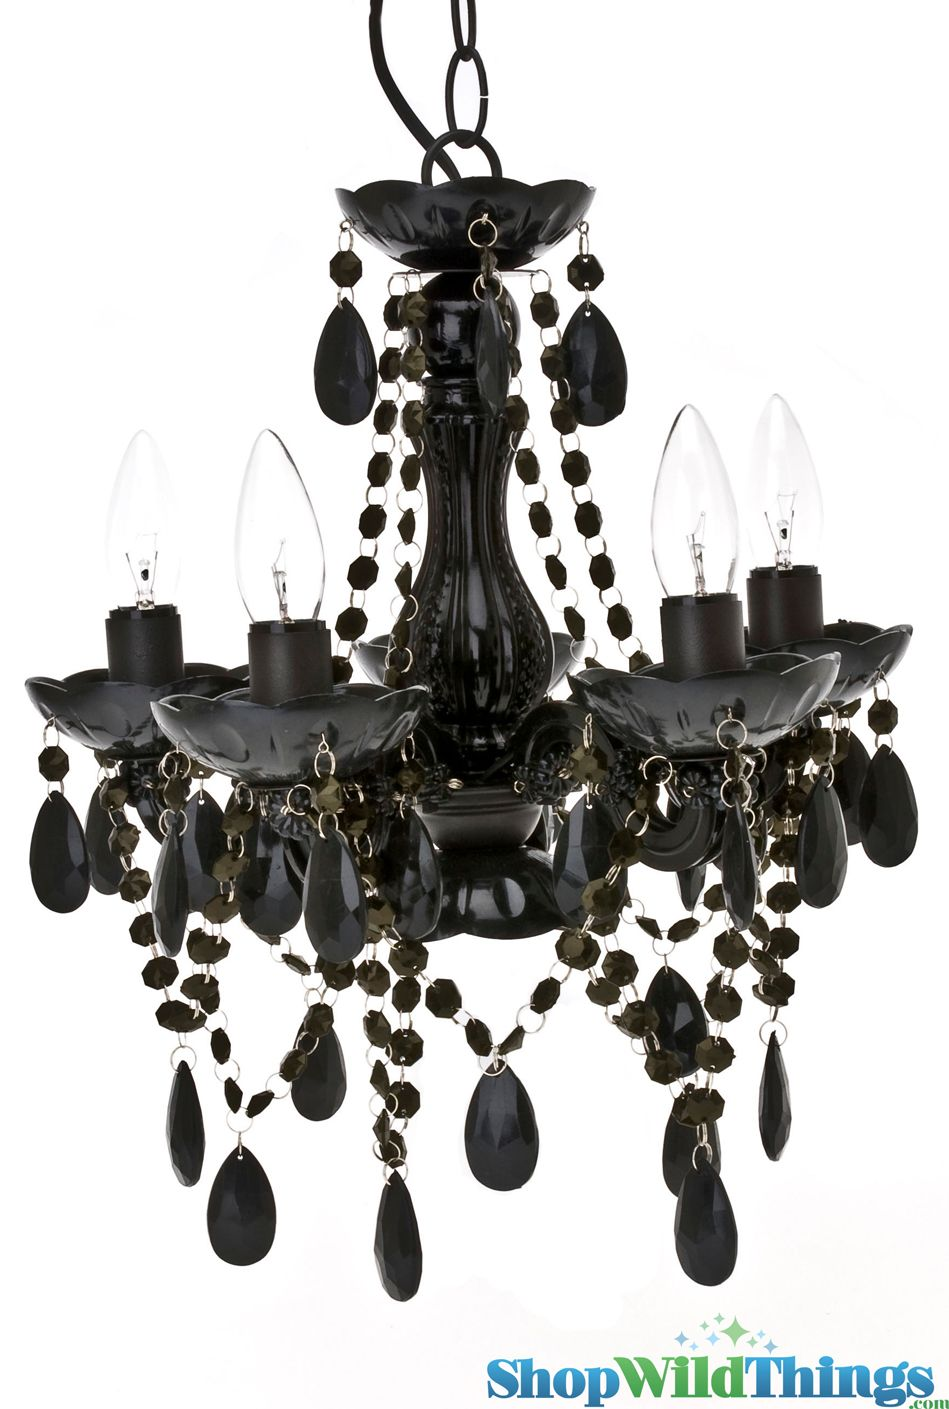 Coming soon chandelier gypsy black small 5 lights with plug chandelier gypsy black small 5 lights with plug aloadofball Images